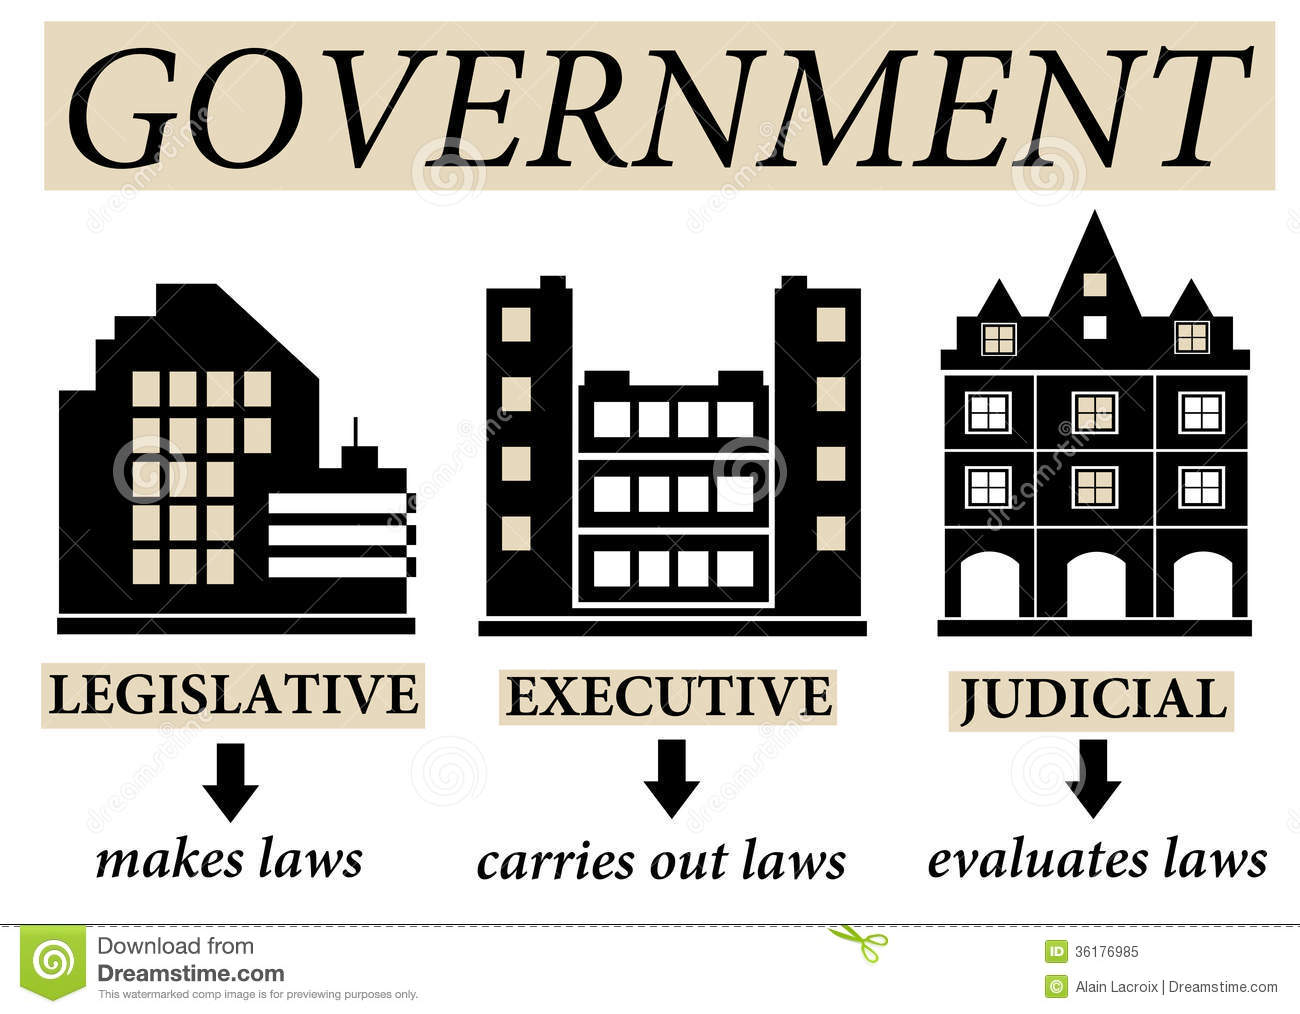 Federal government of the United States